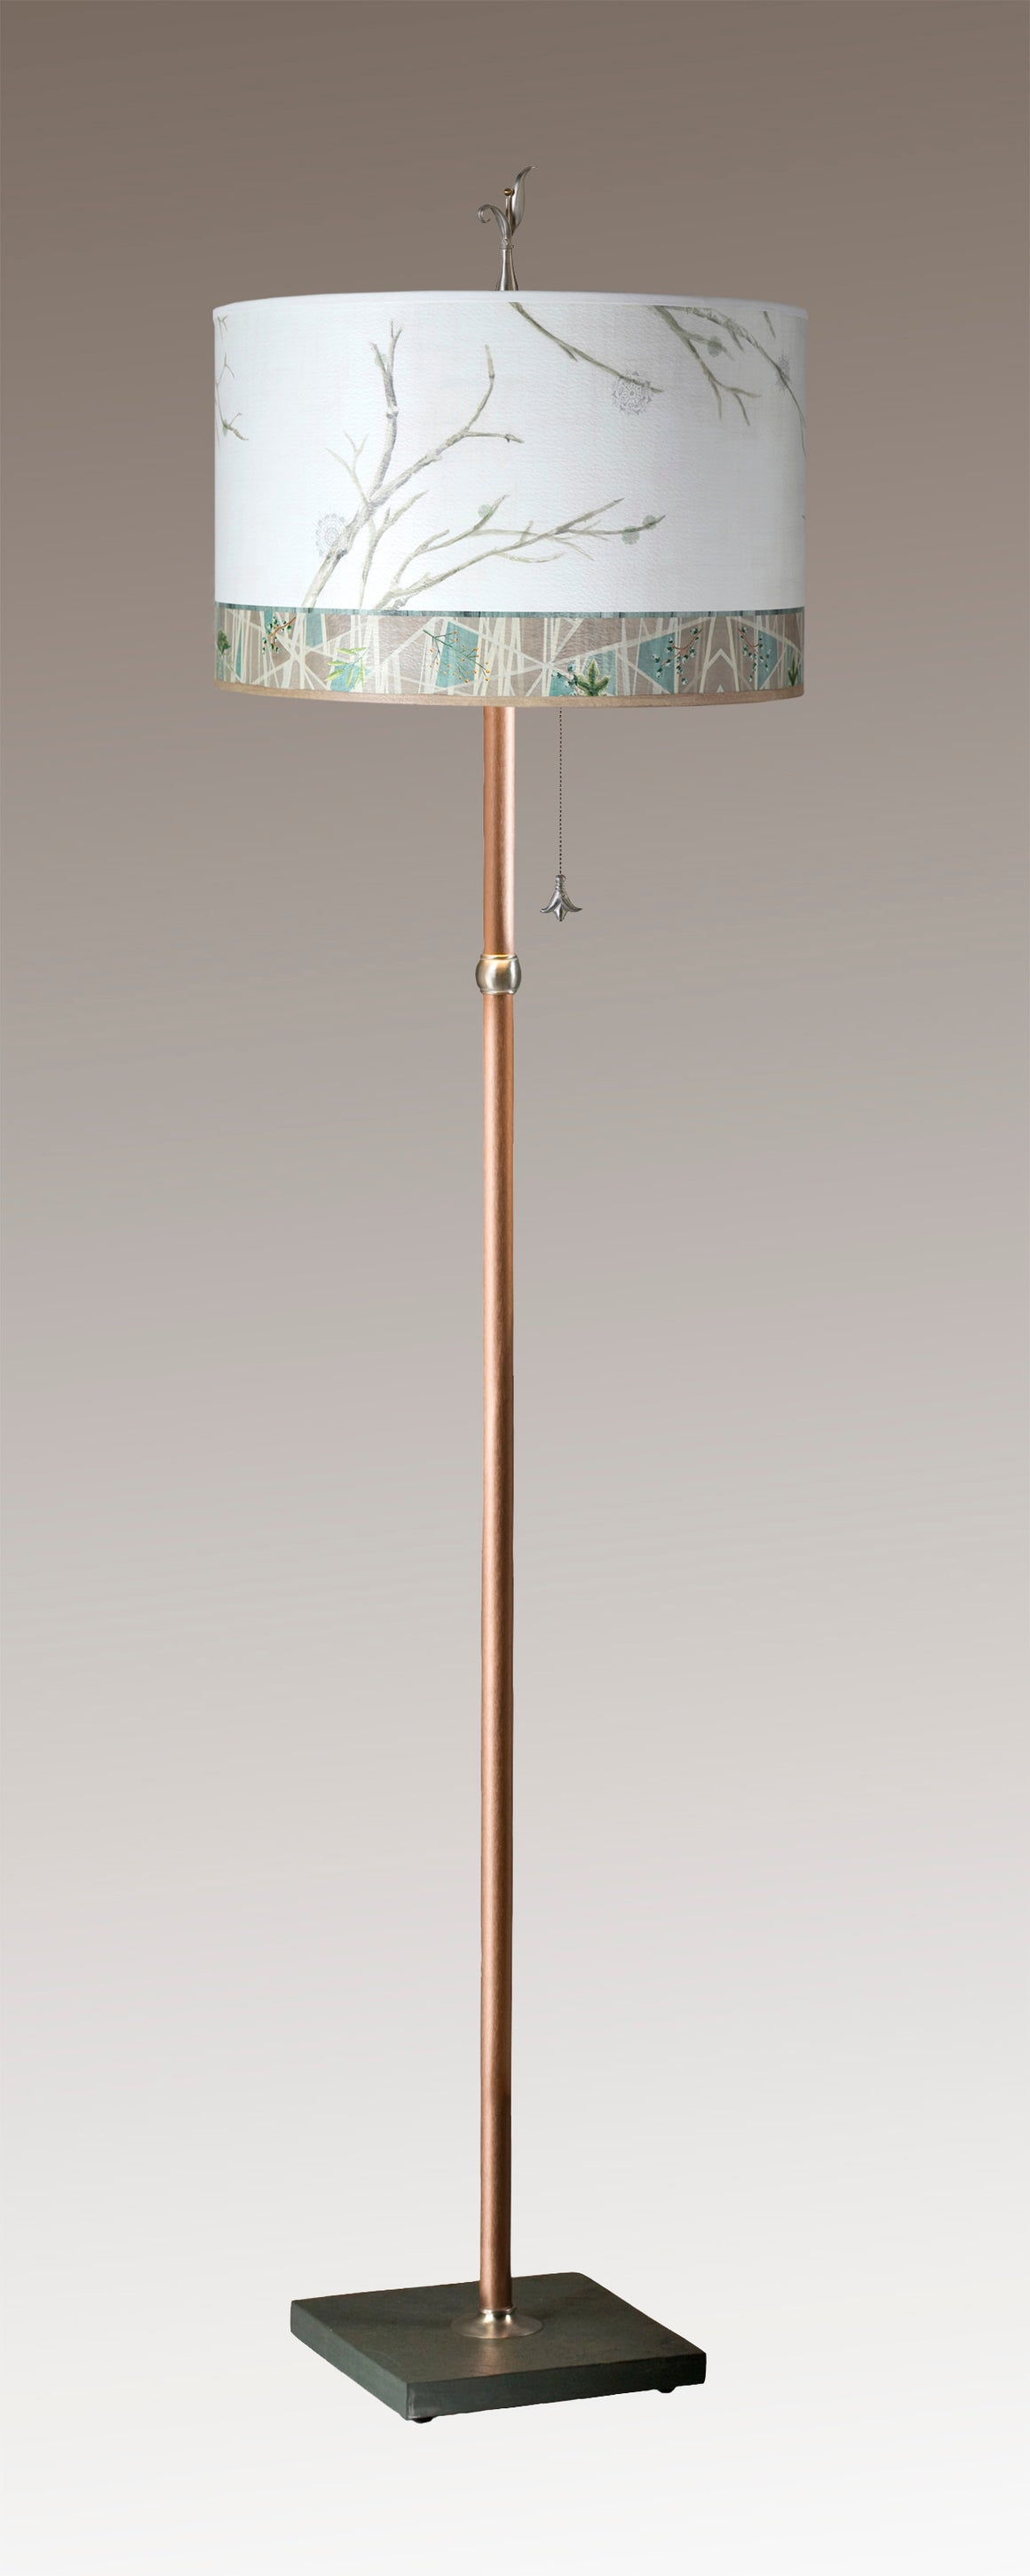 Copper Floor Lamp on Vermont Slate with Large Drum Lampshade in Prism Branch